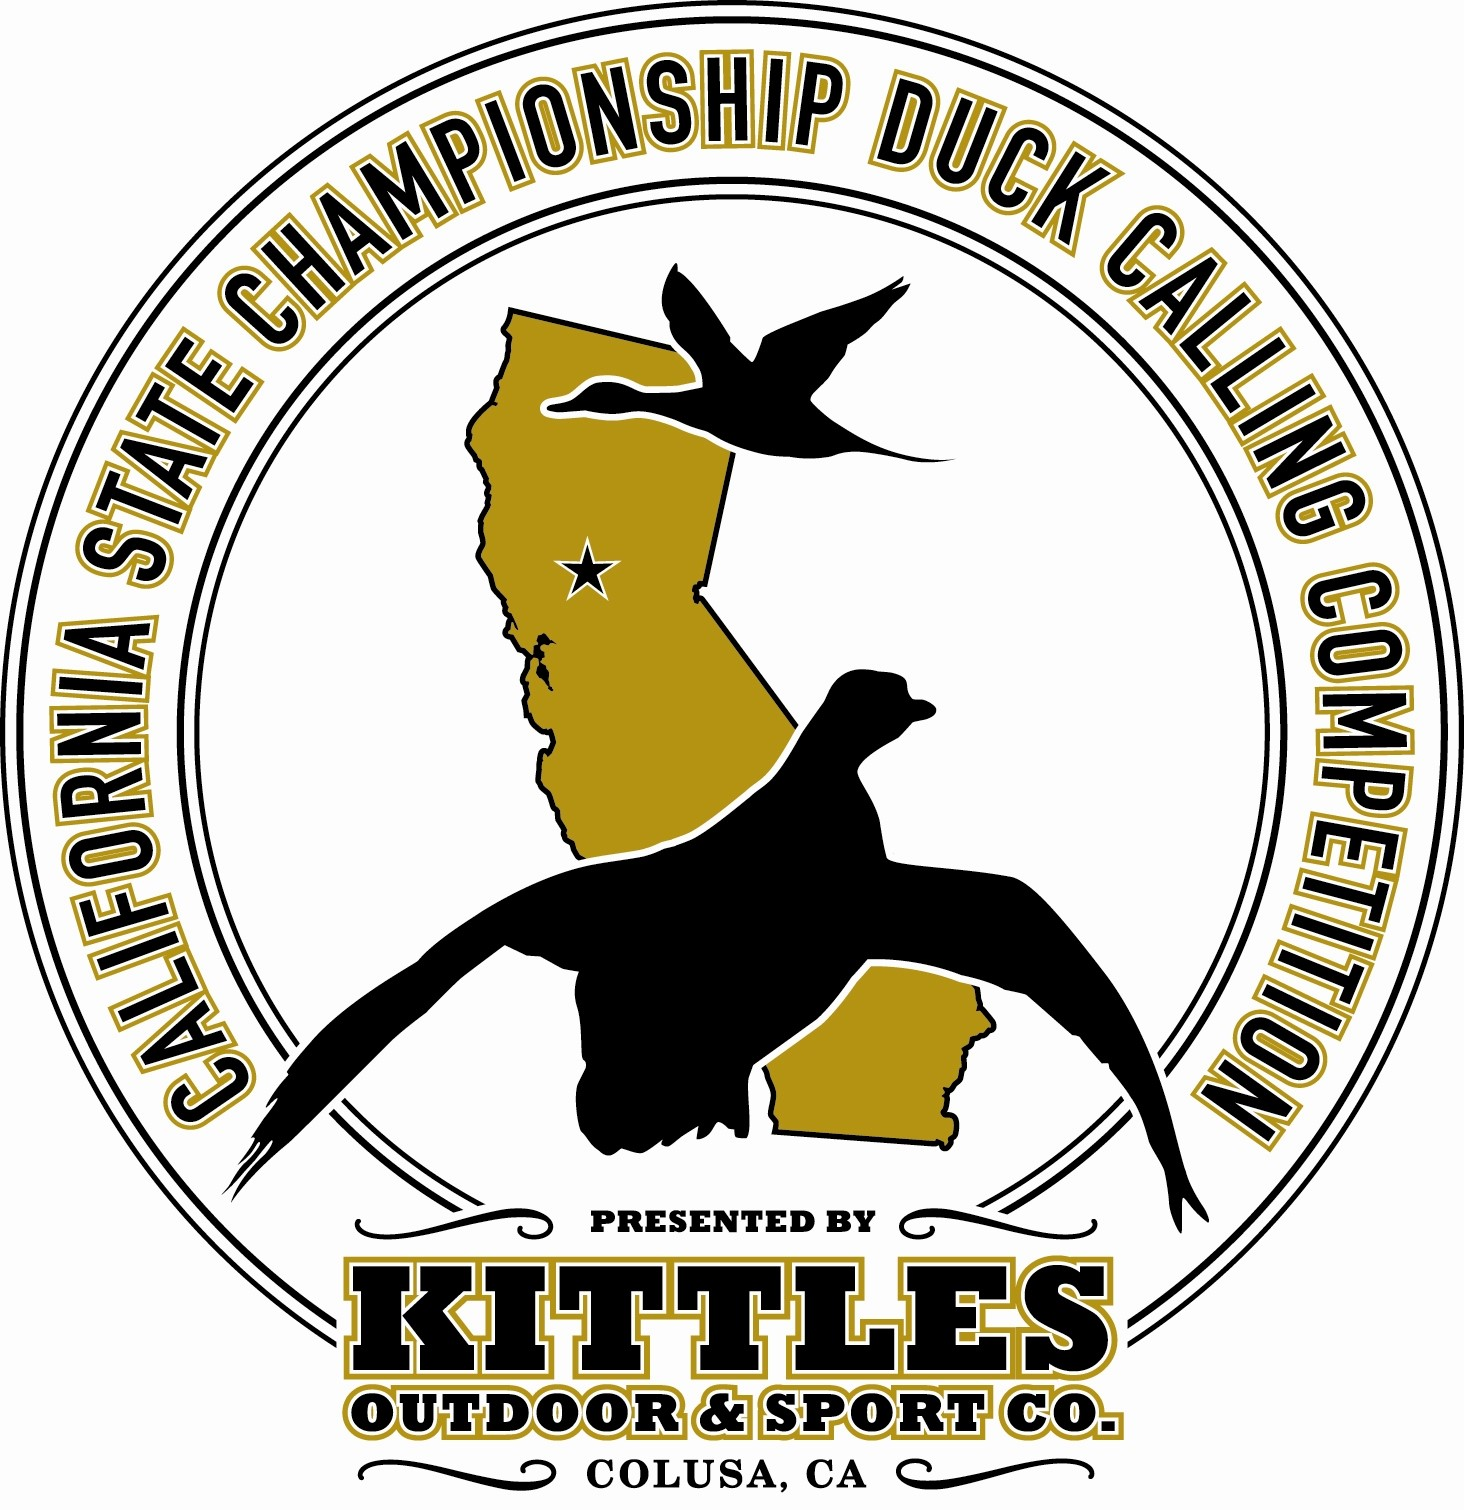 CA Championship Duck Calling Competition